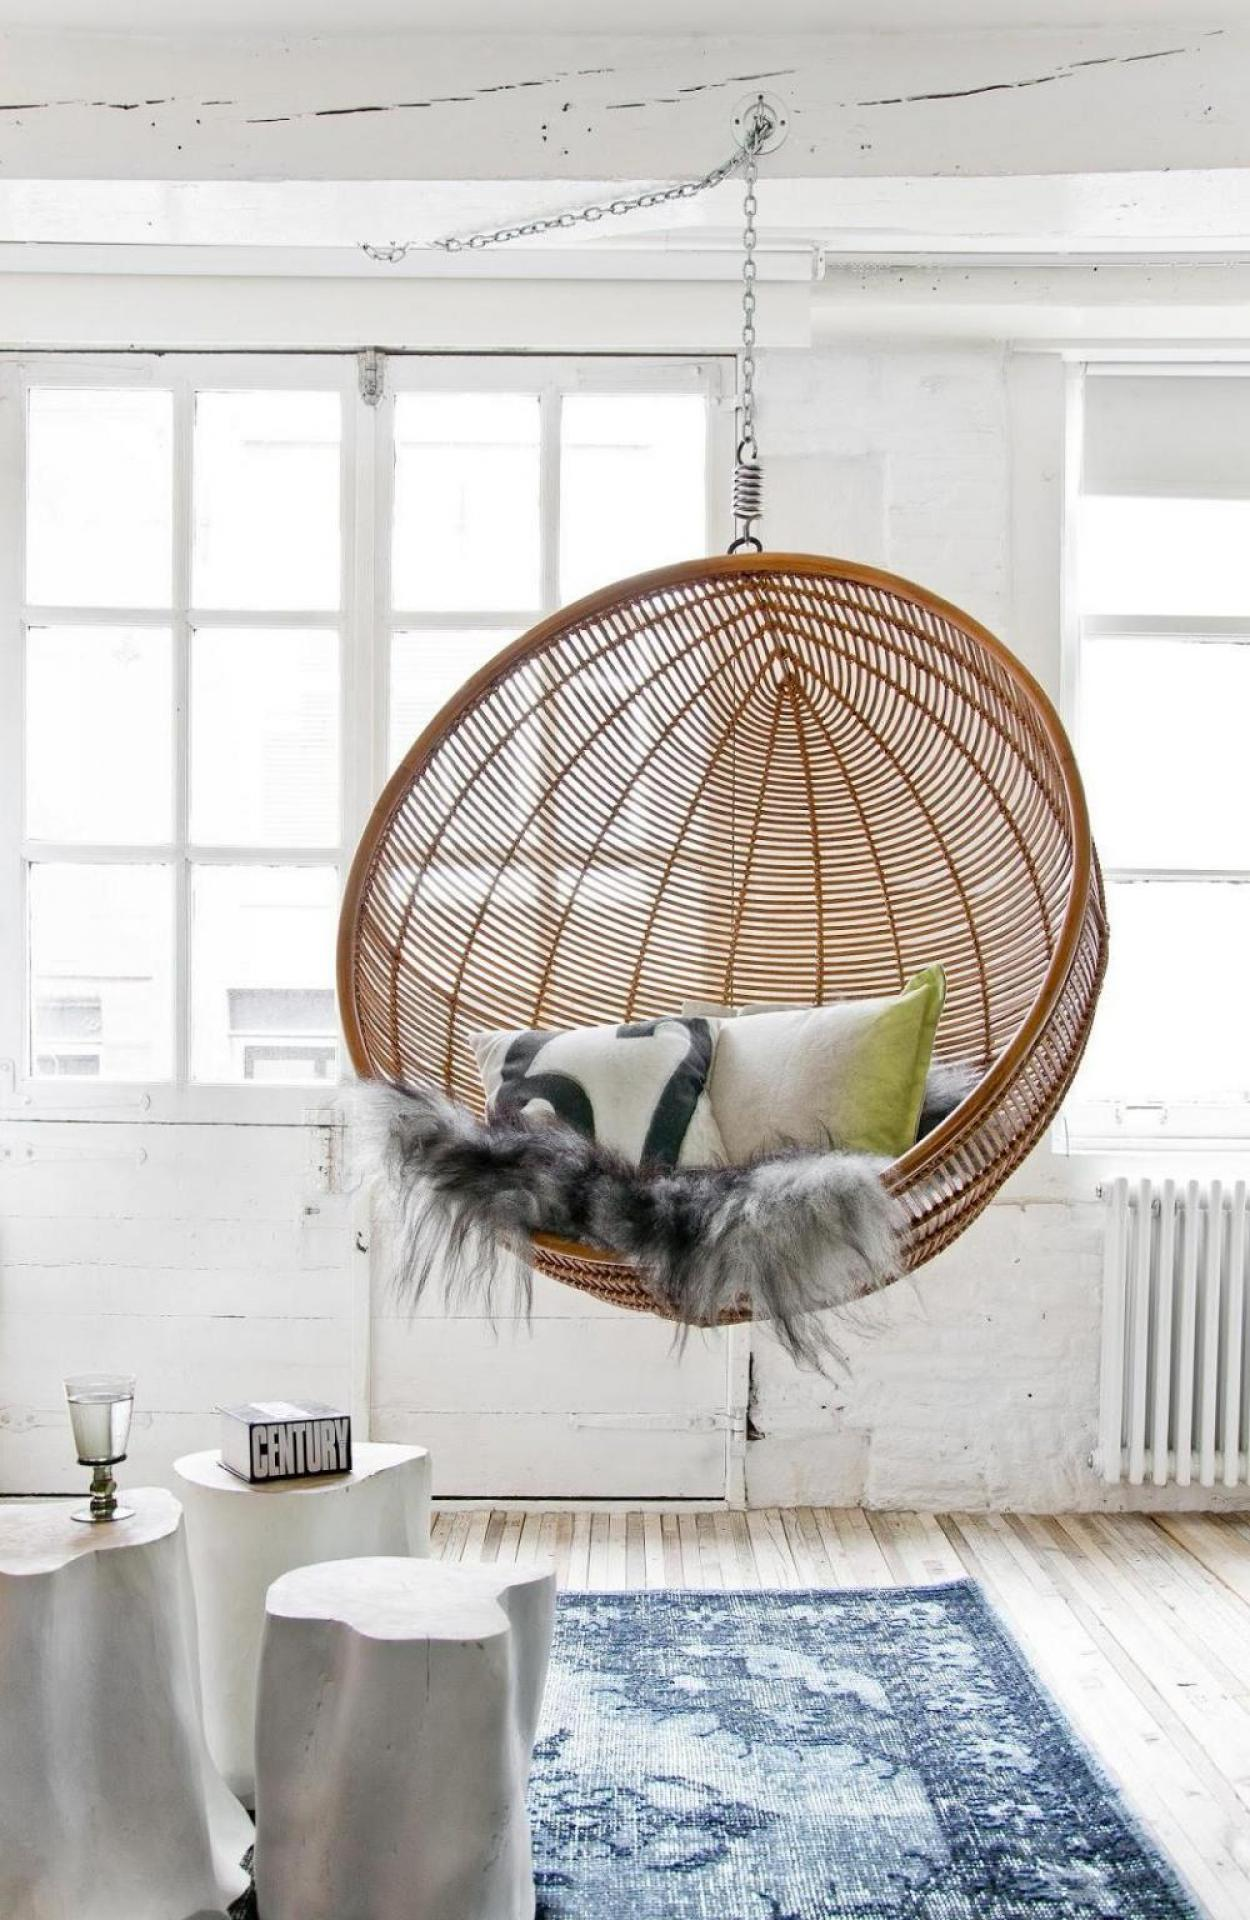 Genial Chair Hang From Ceiling | The Best Chair Review Blog